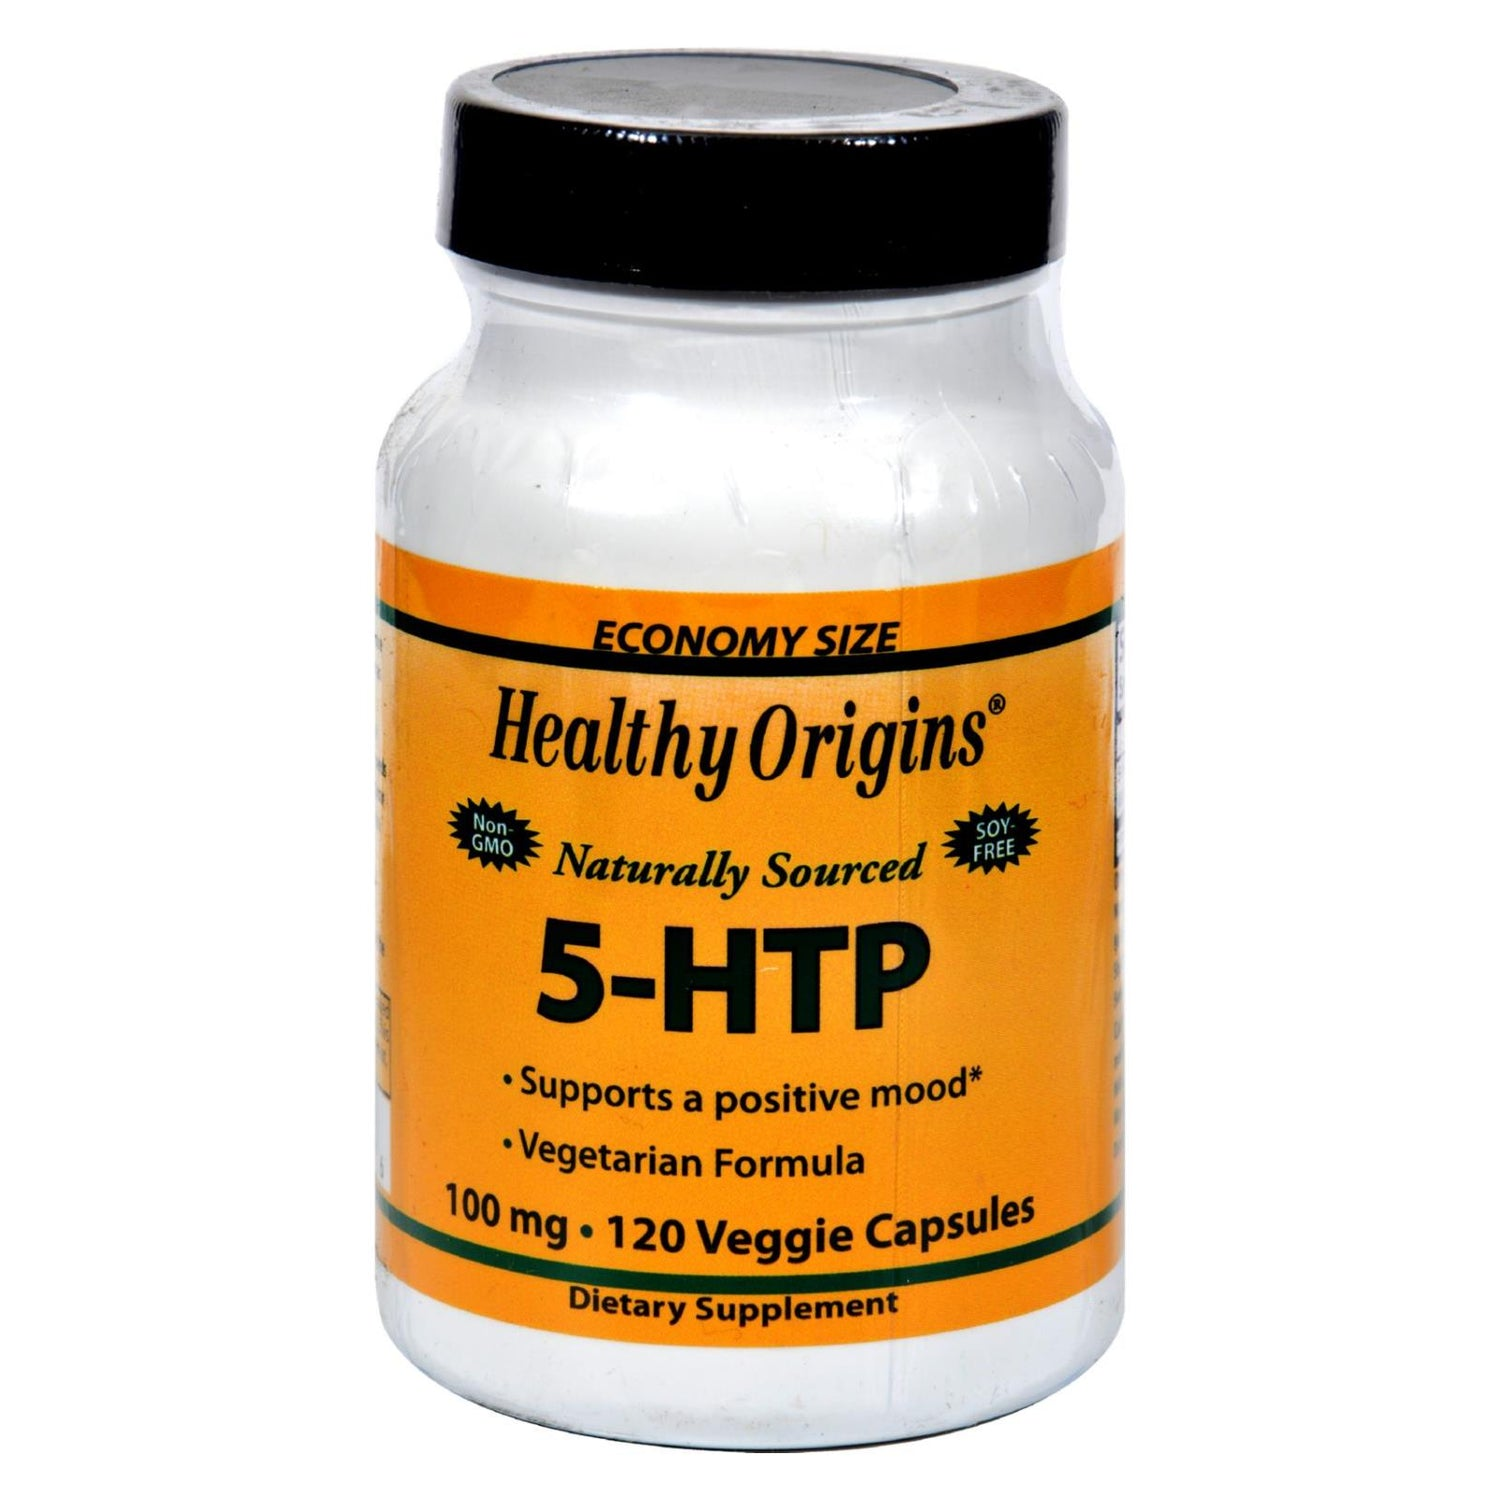 Healthy Origins Natural 5-htp - 100 Mg - 120 Capsules